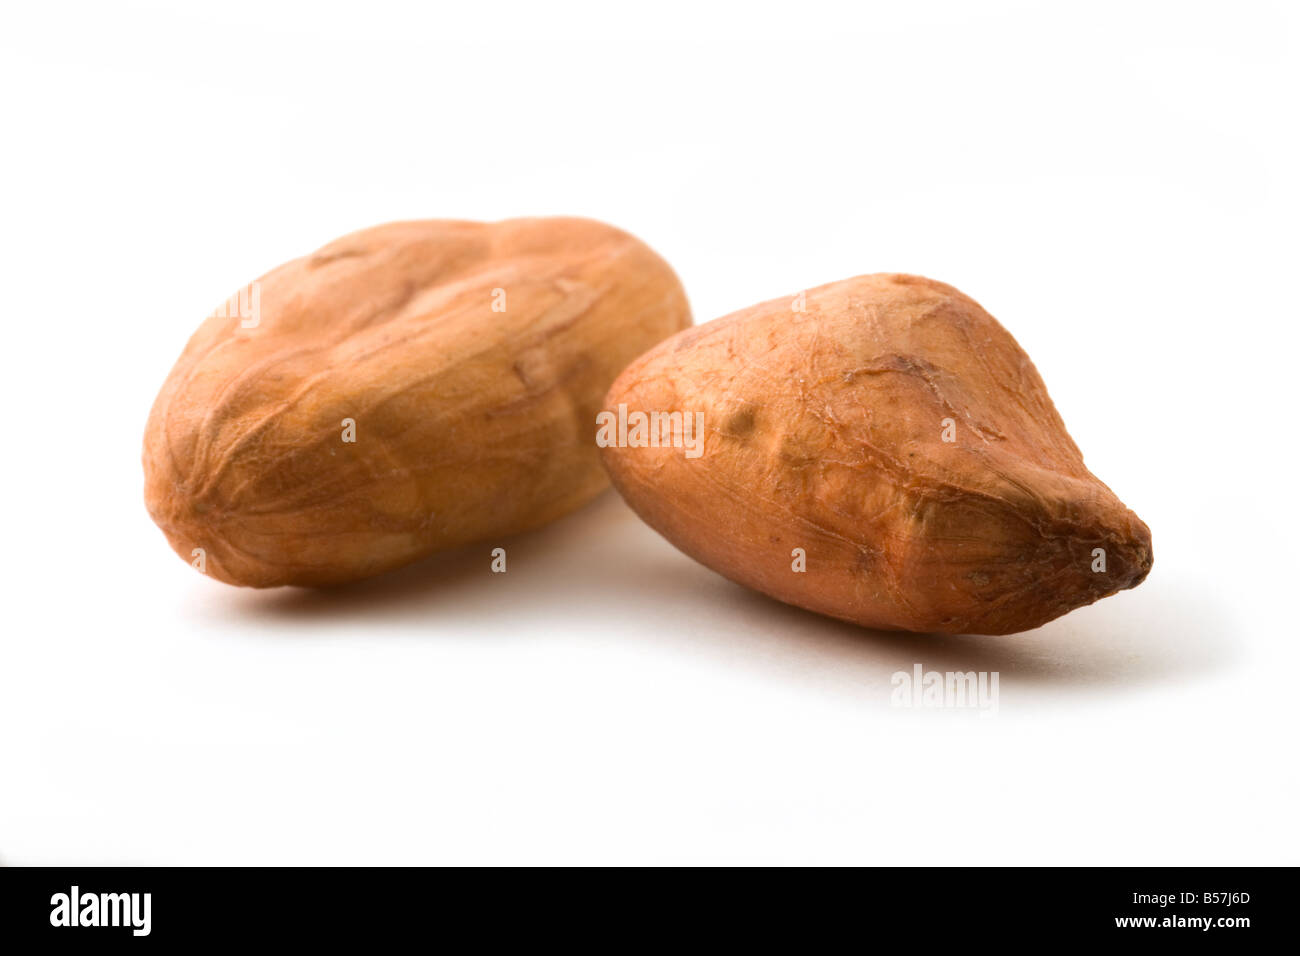 Cacao Beans on a White Background. - Stock Image